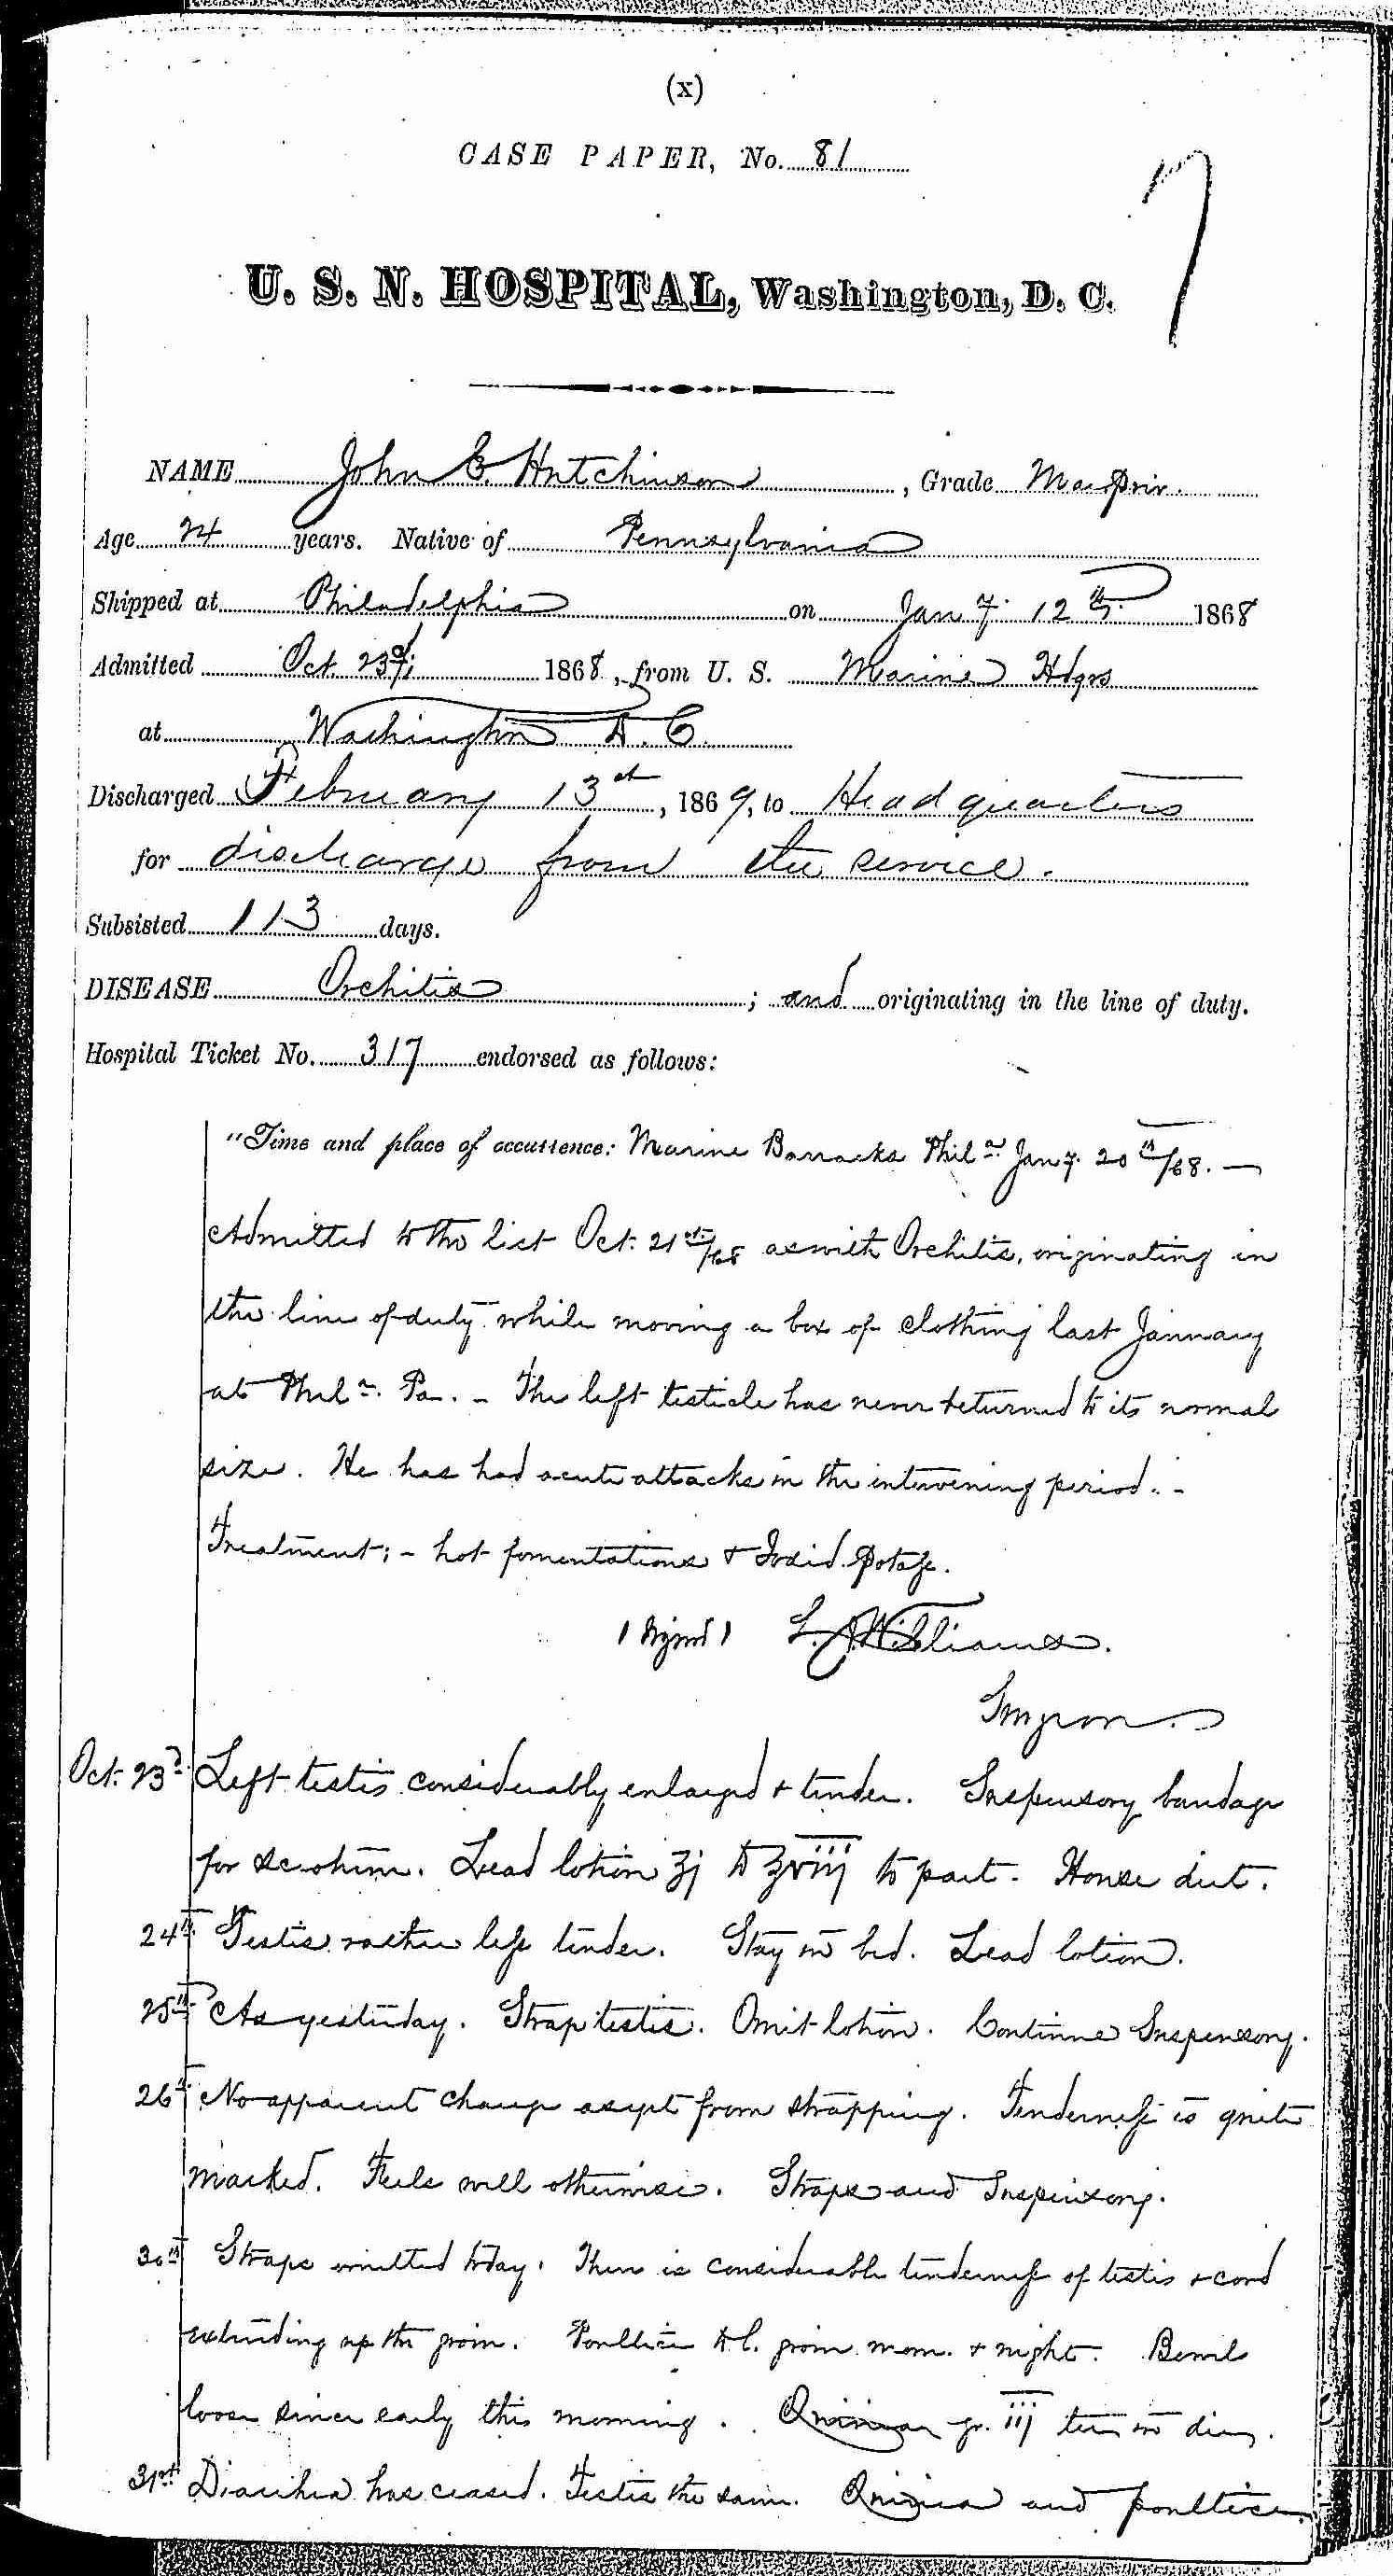 Entry for John C. Hutchinson (page 1 of 4) in the log Hospital Tickets and Case Papers - Naval Hospital - Washington, D.C. - 1868-69